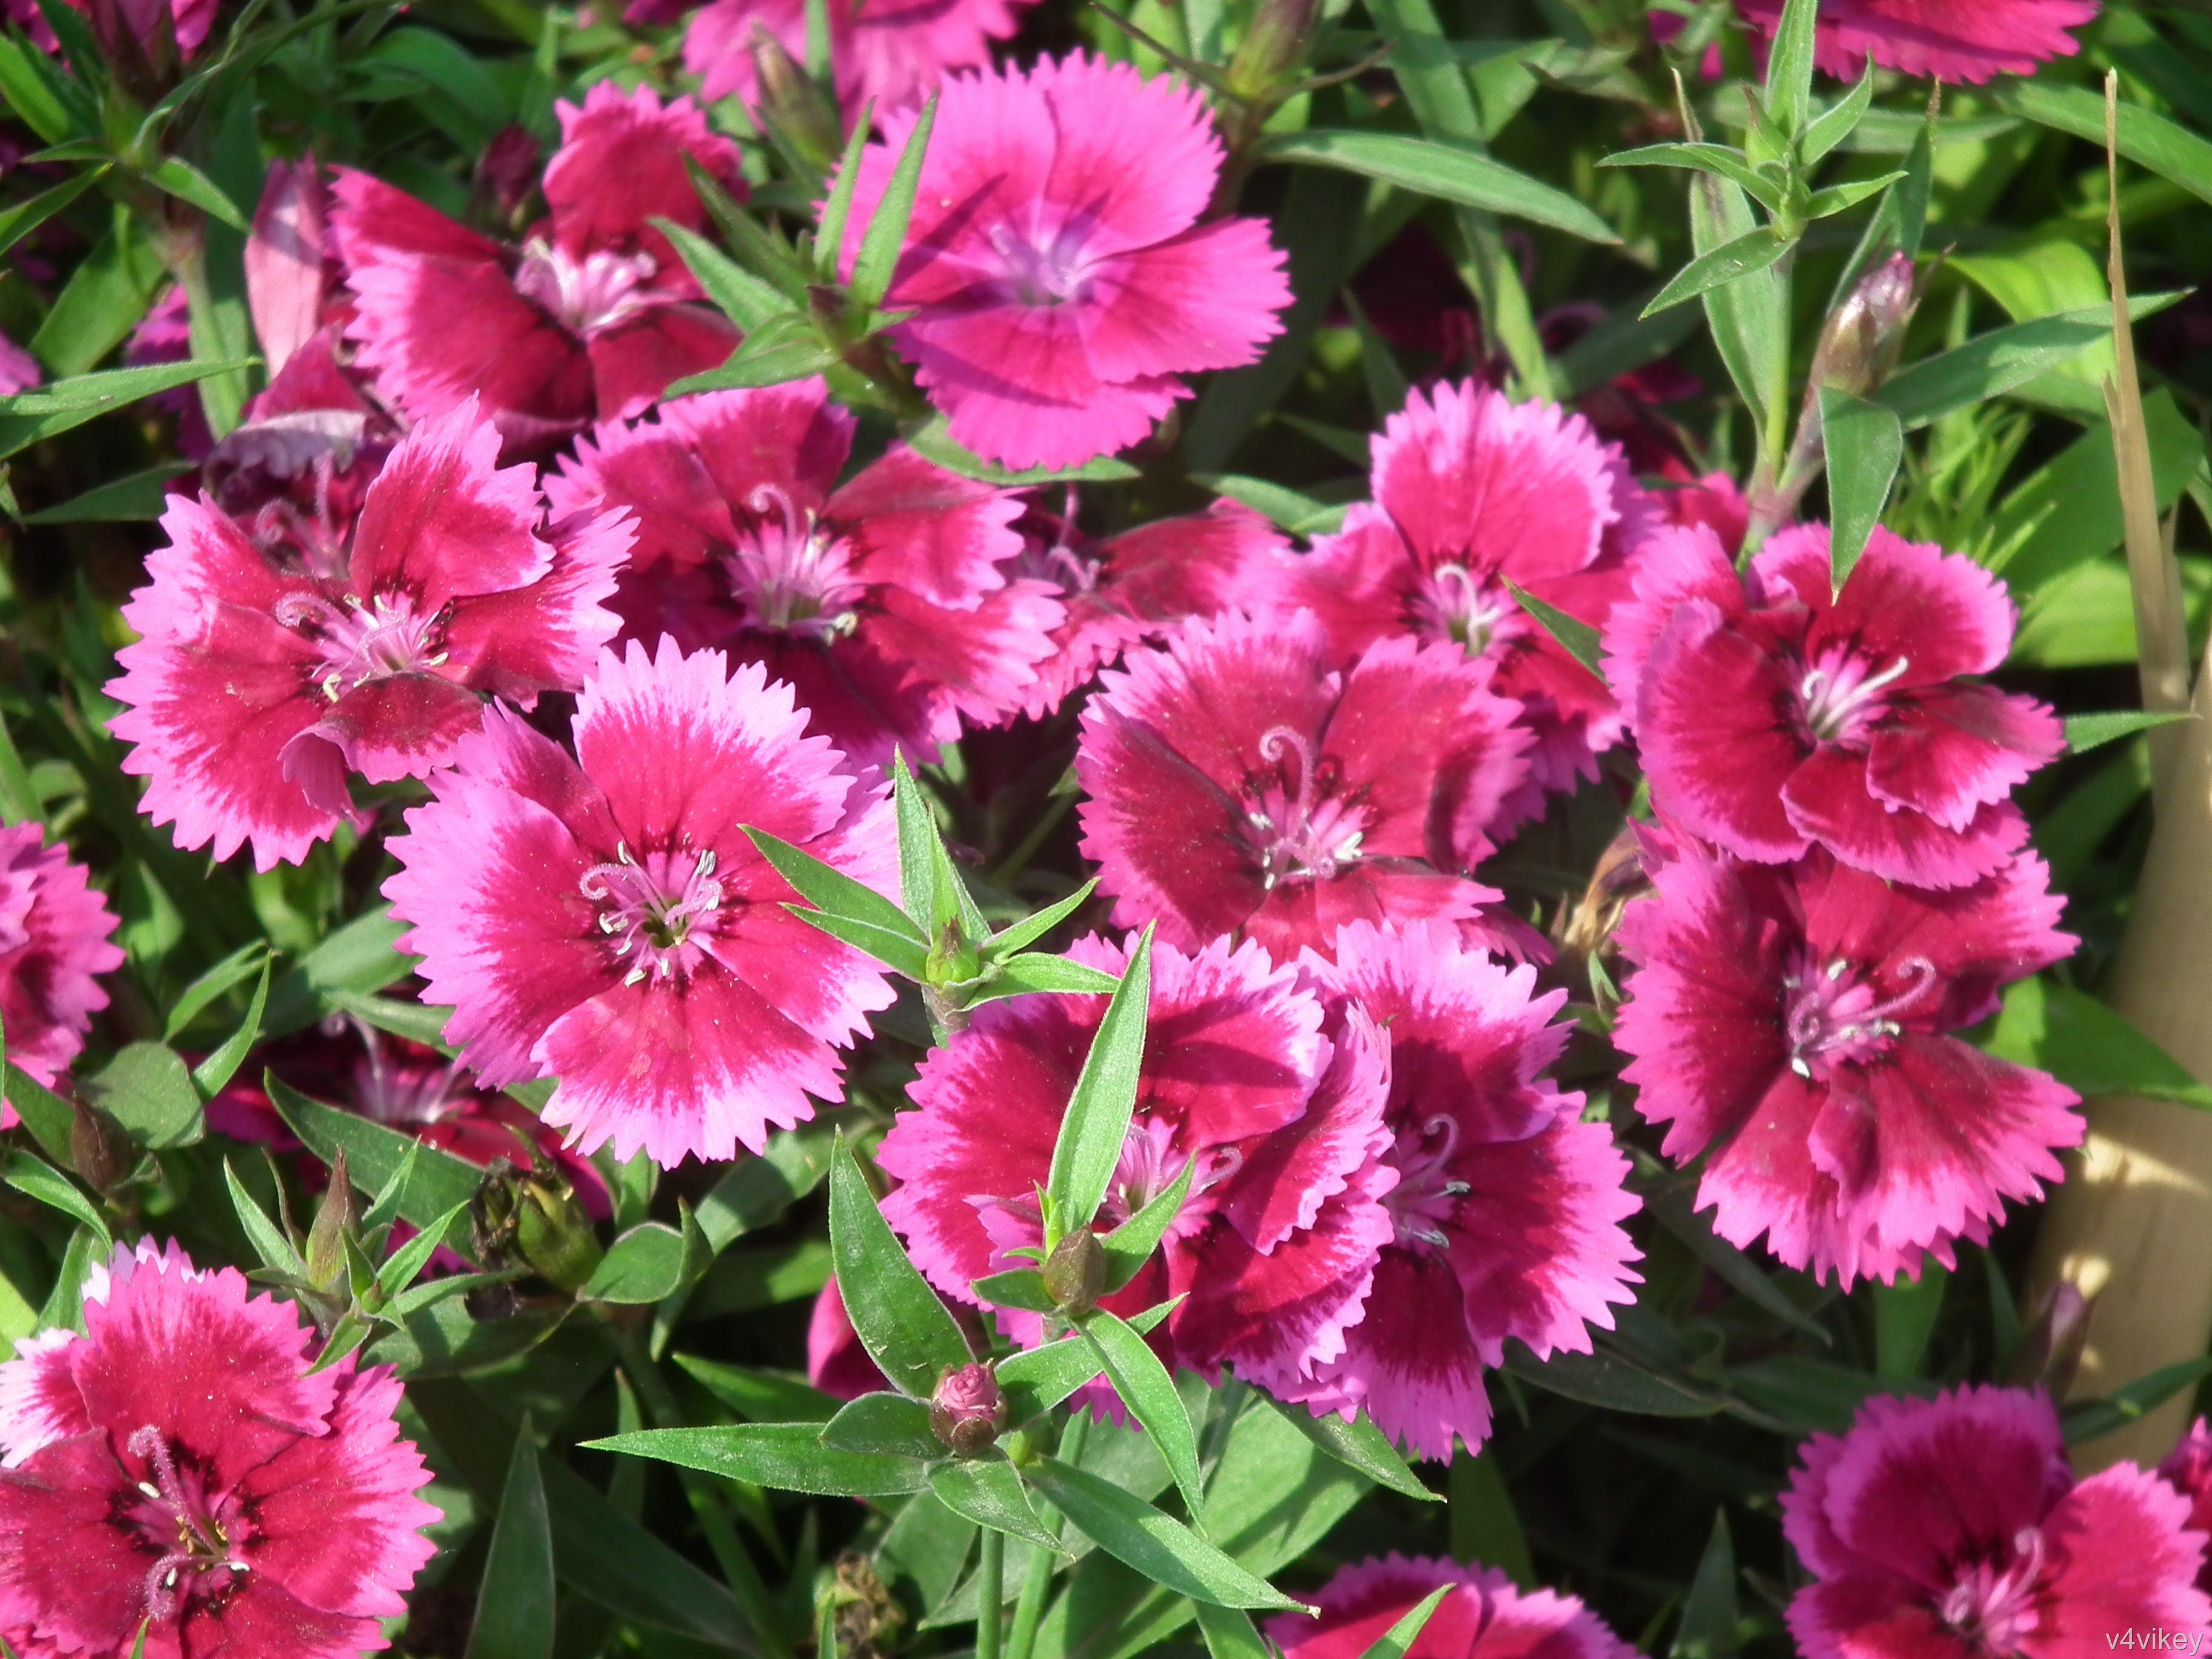 Types of perennial dianthus wallpaper tadka frosty fire dianthus flowers are excellent for cutting mightylinksfo